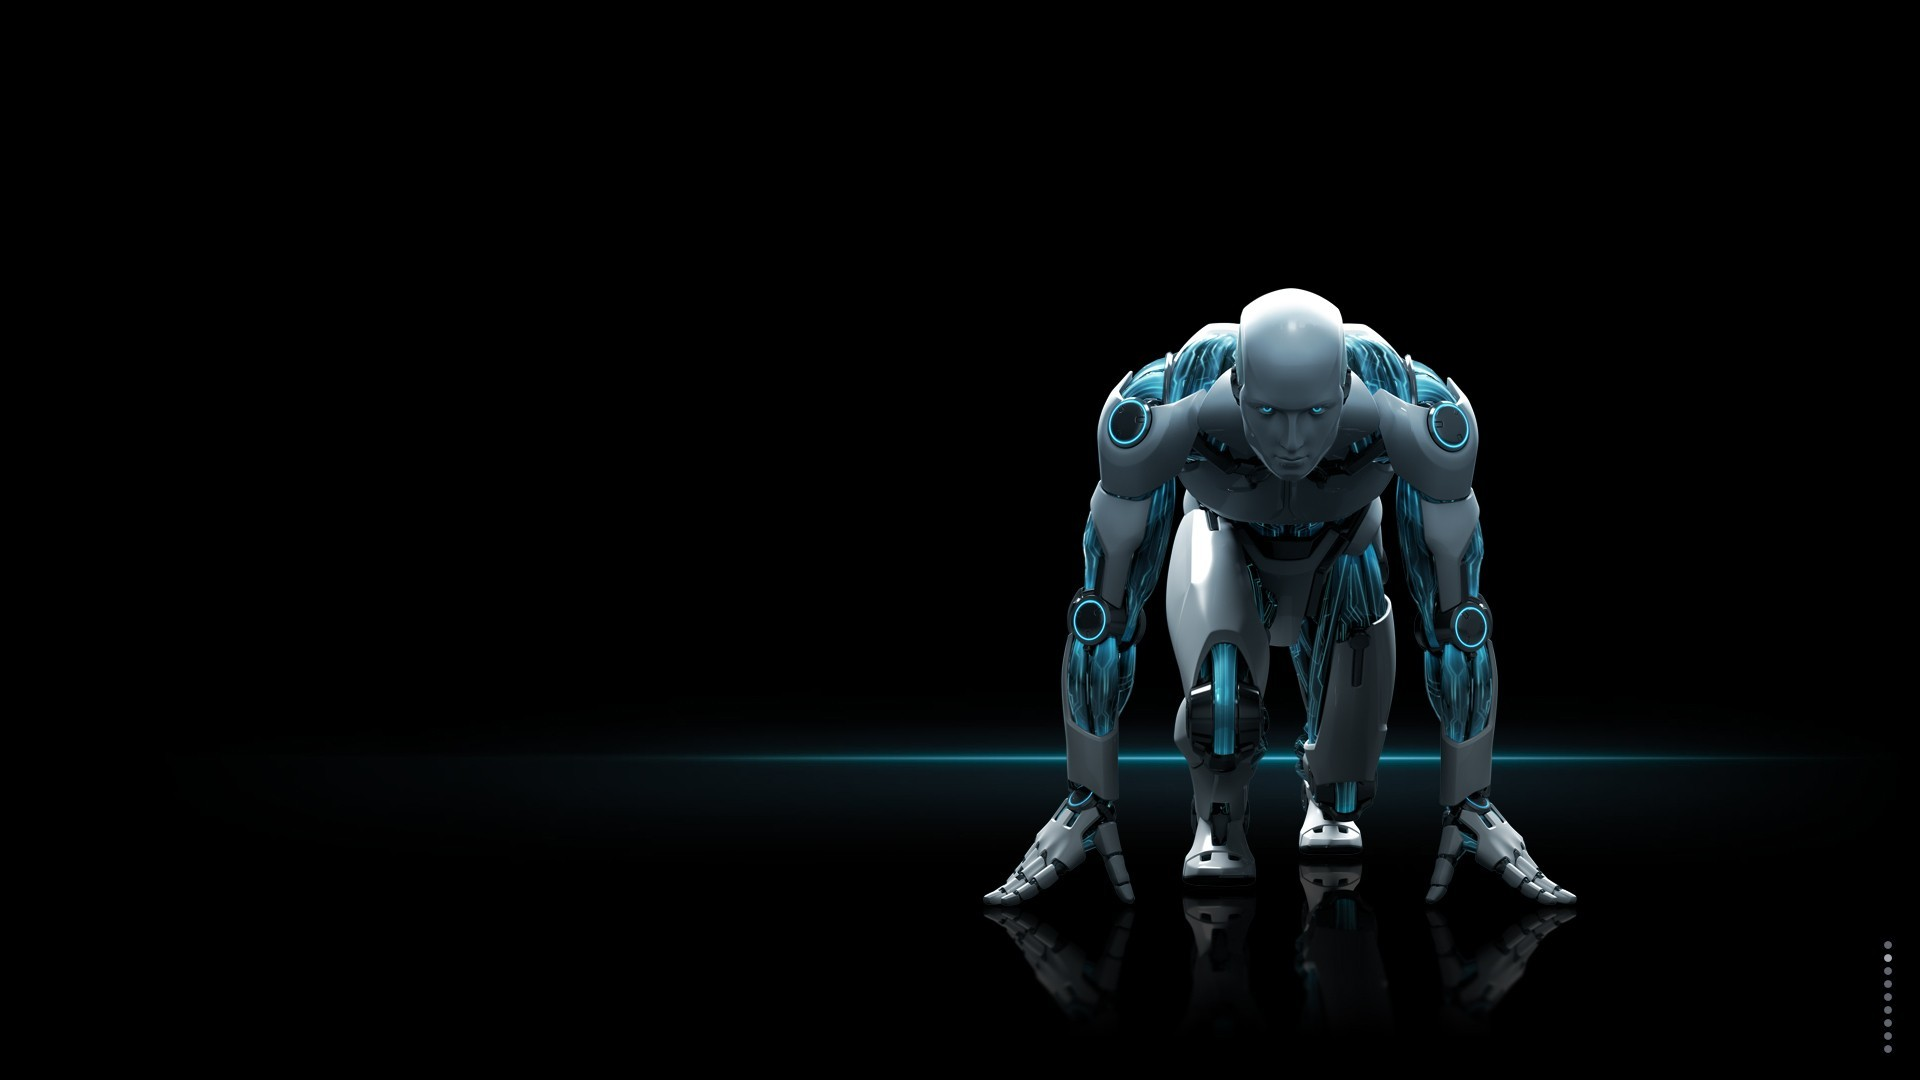 1920x1080 robots | Robots, hybrid, pictures, background, wallpaper, images - 736721